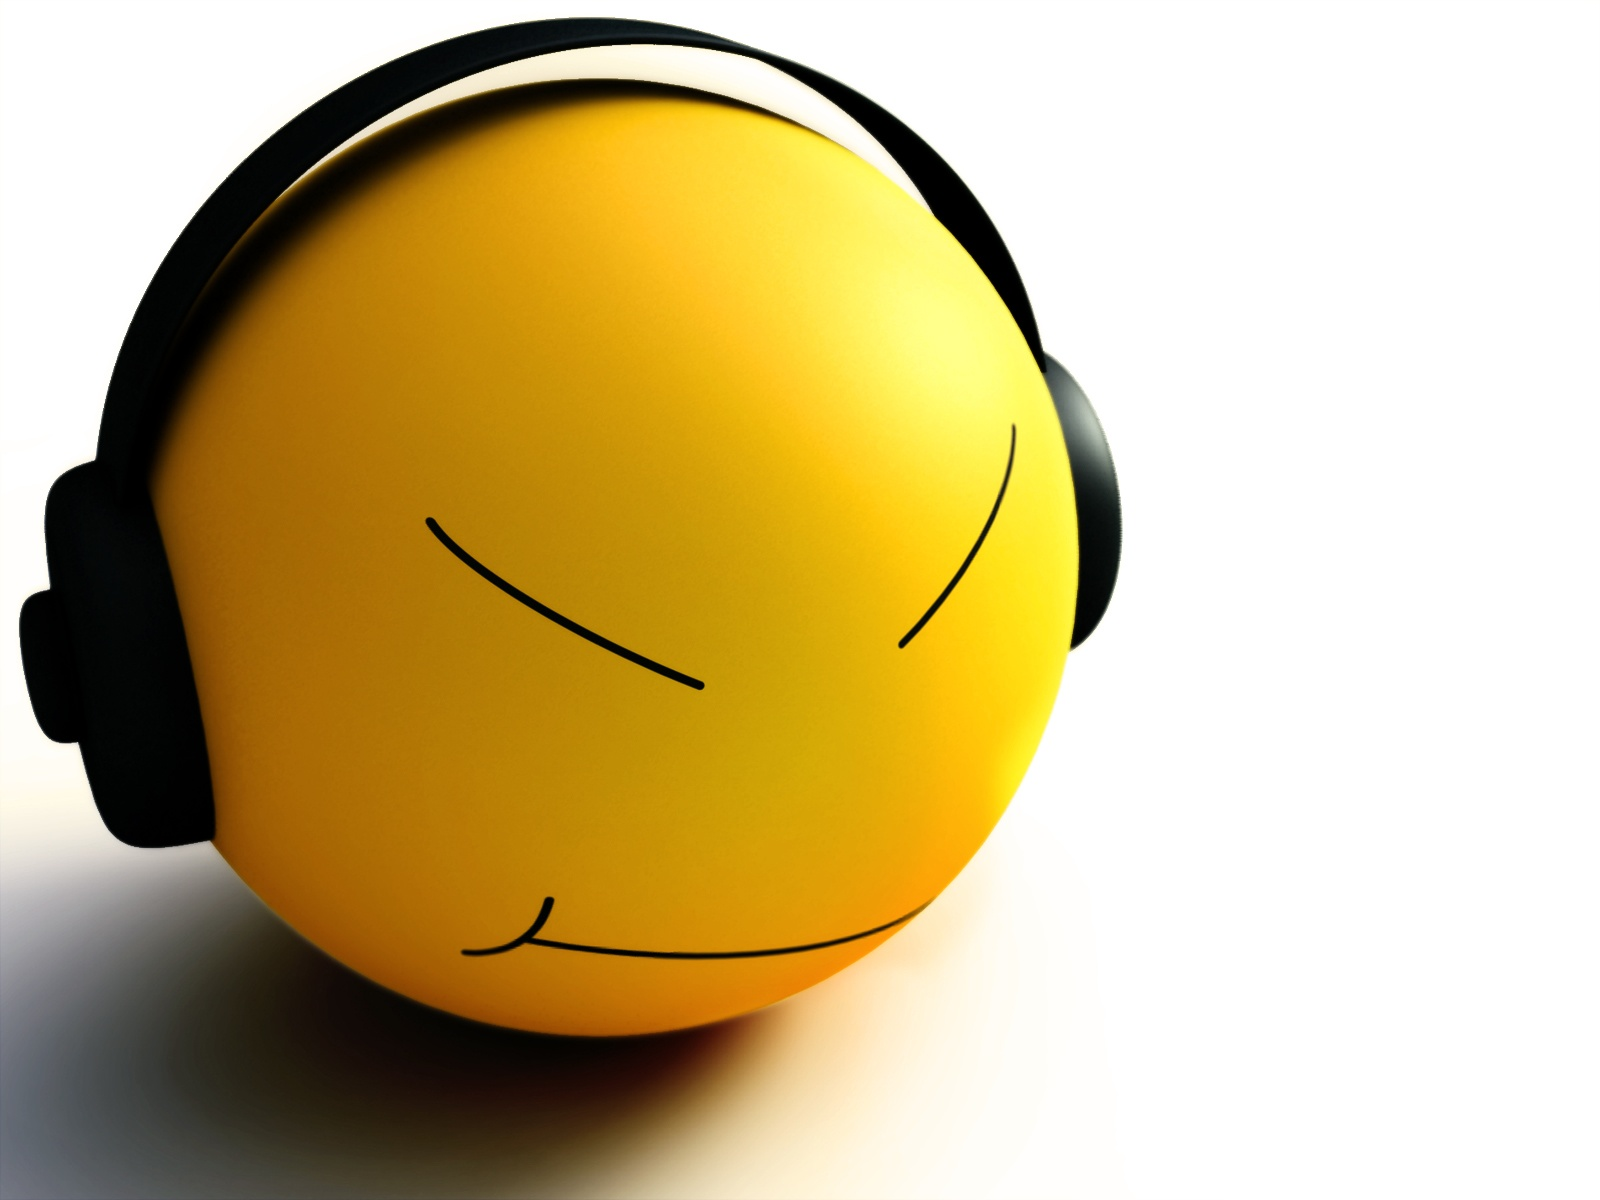 Smiley Listen Music Wallpapers in jpg format for free download on free icons, free clip art smiley faces, free music smileys, free animal smileys, free dancing smileys, free graphics smileys, sports smileys, free halloween smiley faces, office smileys, free characters, free emoticons, animated smileys, free party smileys,